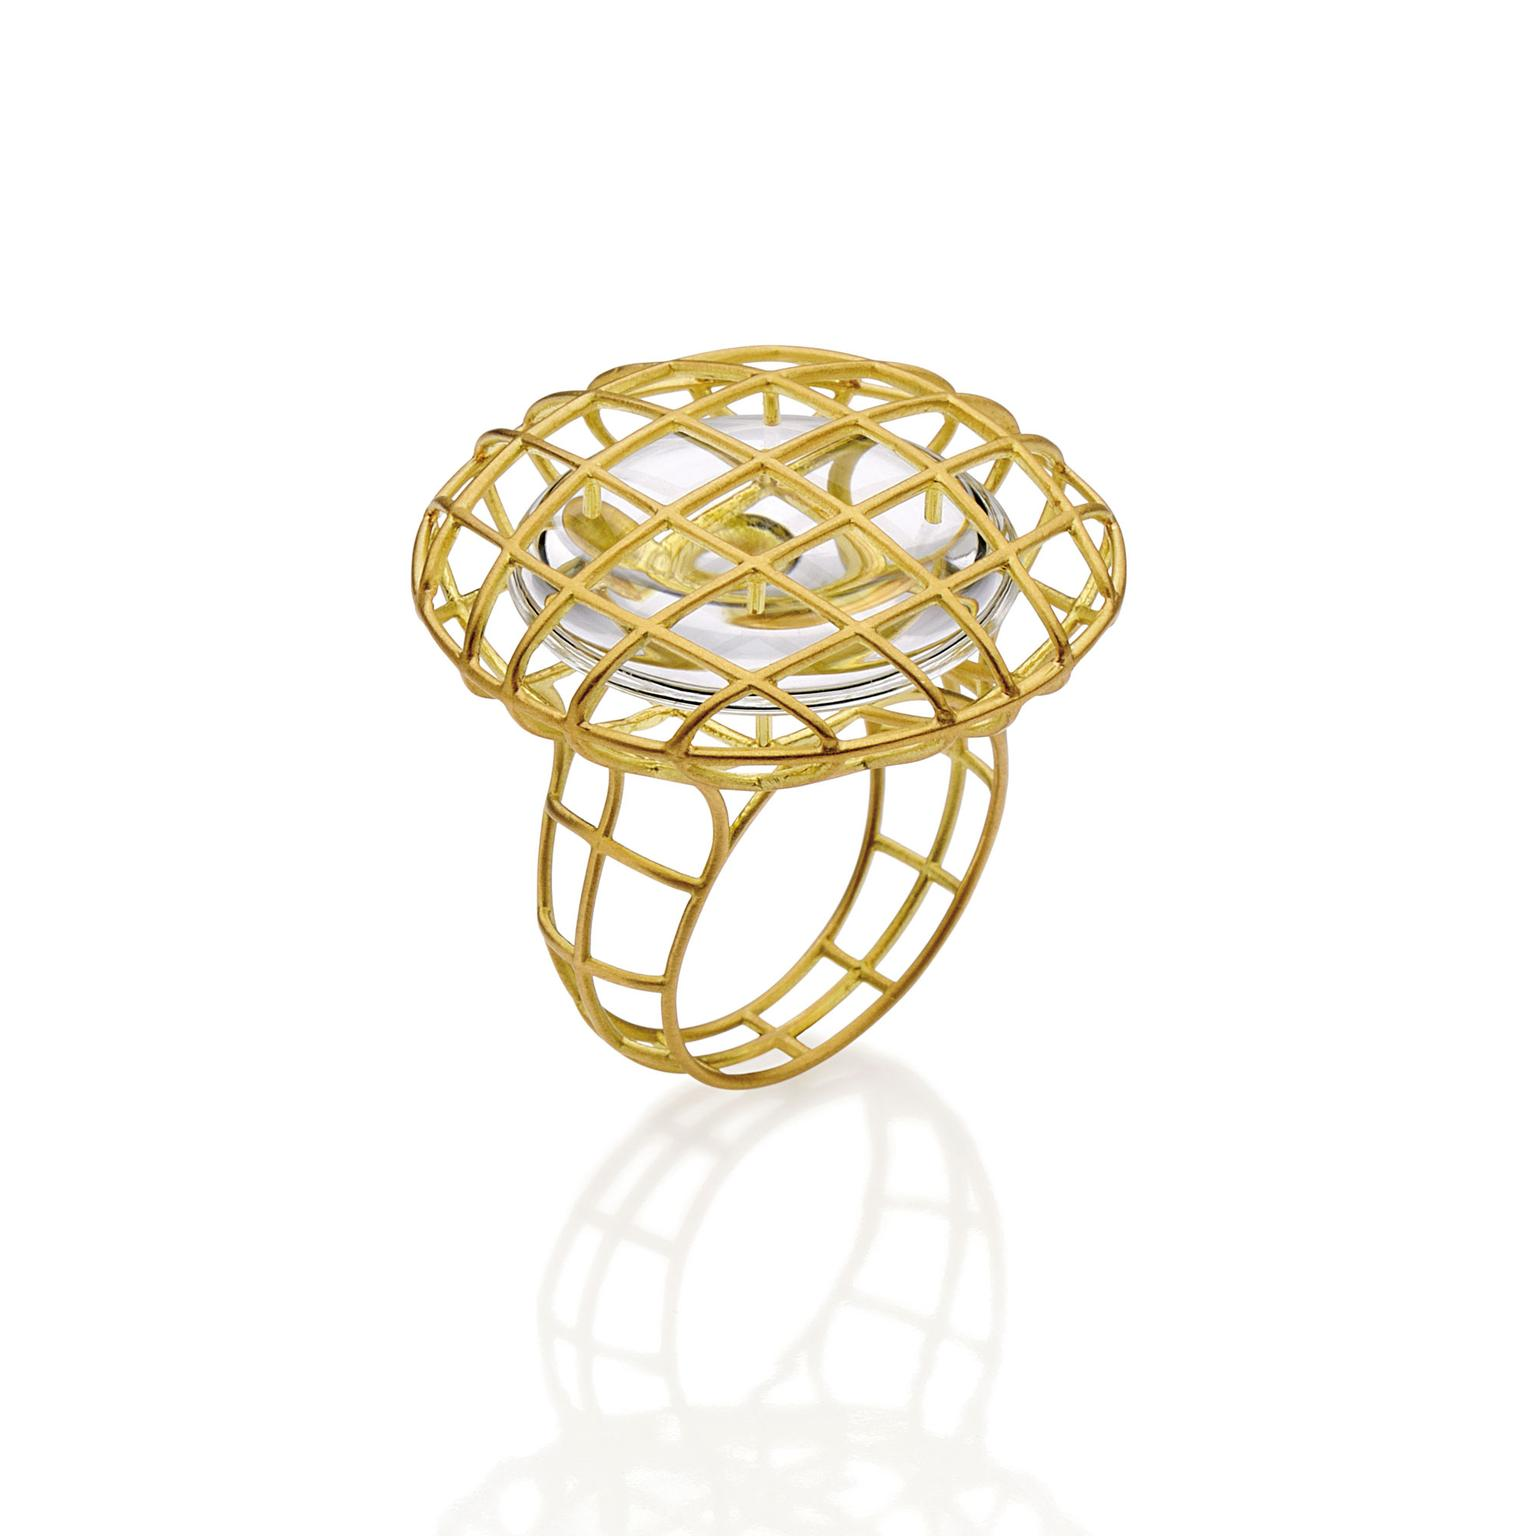 Antonio Bernardo gold and quartz ring